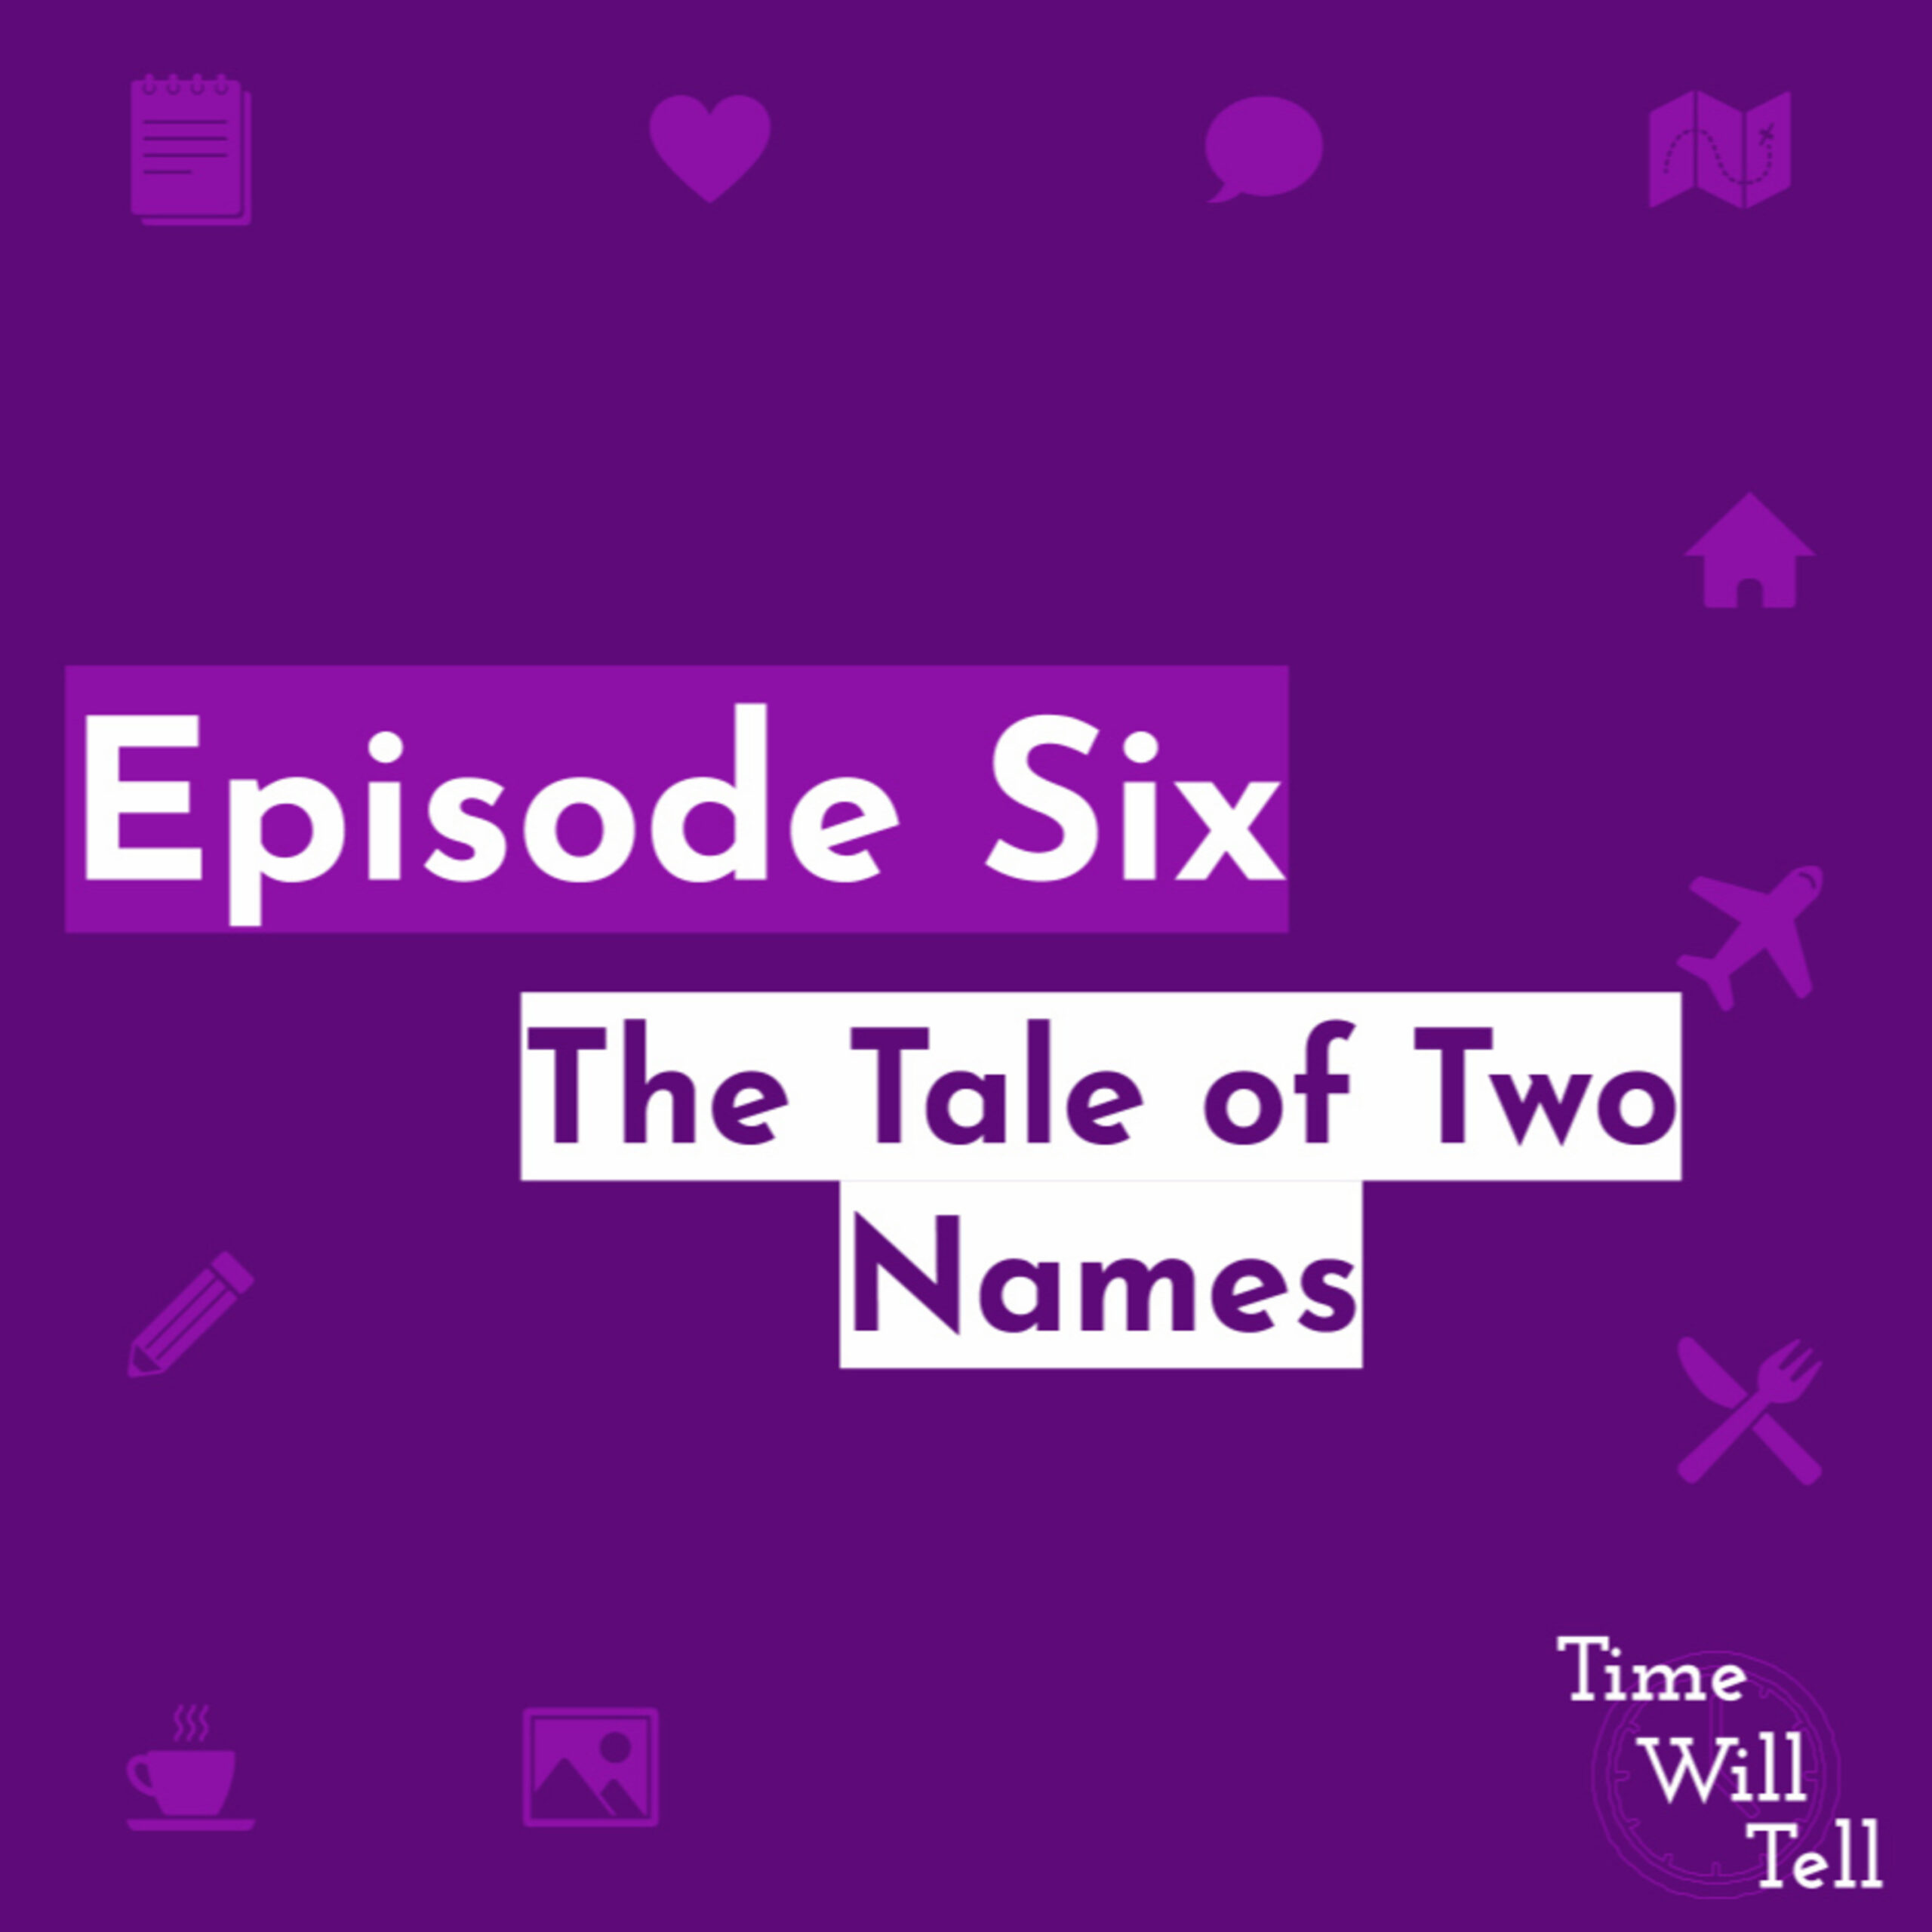 Episode Six: The Tale of Two Names